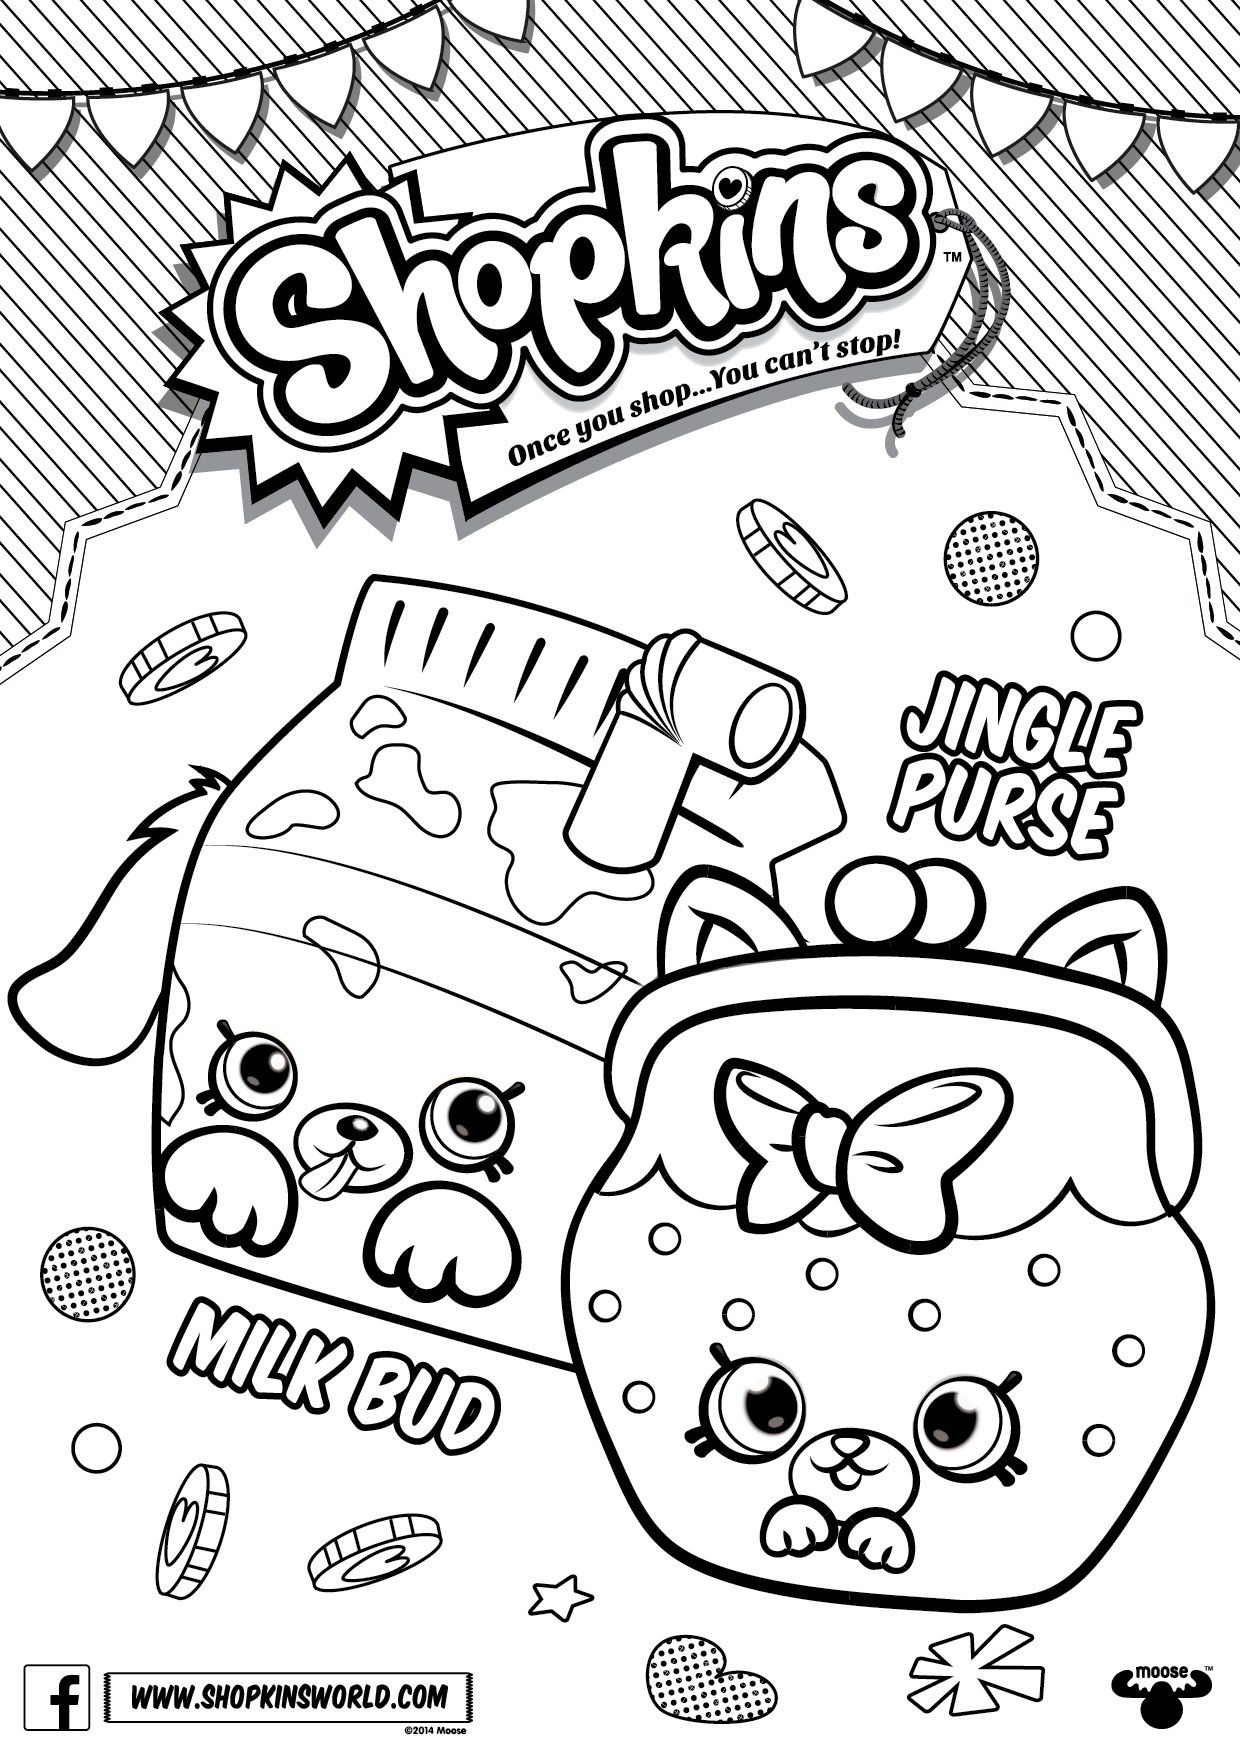 Shopkins Coloring Pages Season 4 Petkins Jingle Purse Milk Bud ...